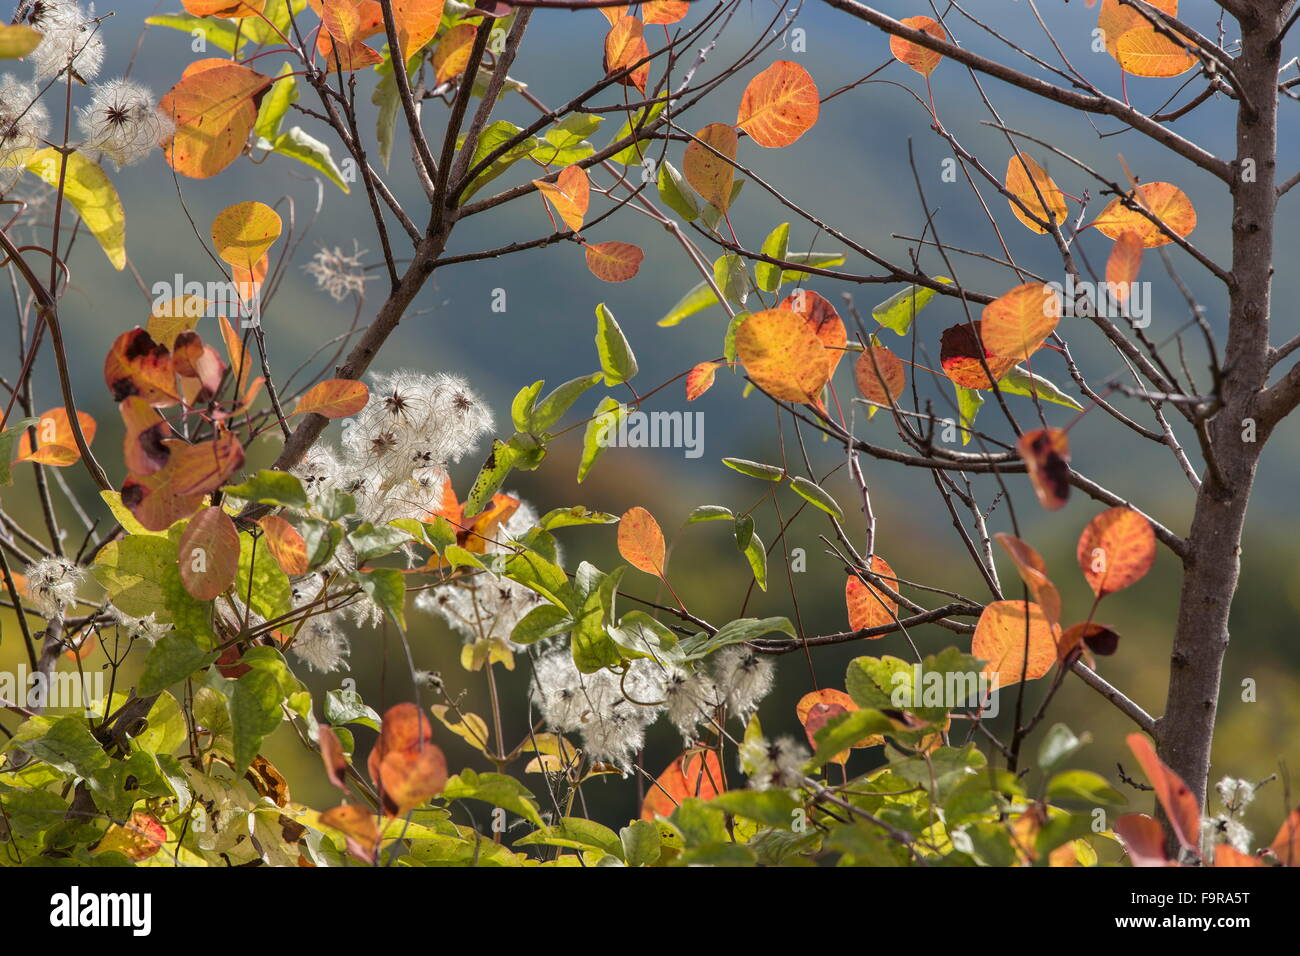 Traveller's-joy and Smoke Bush in autumn colour and fruits, north Greece. - Stock Image